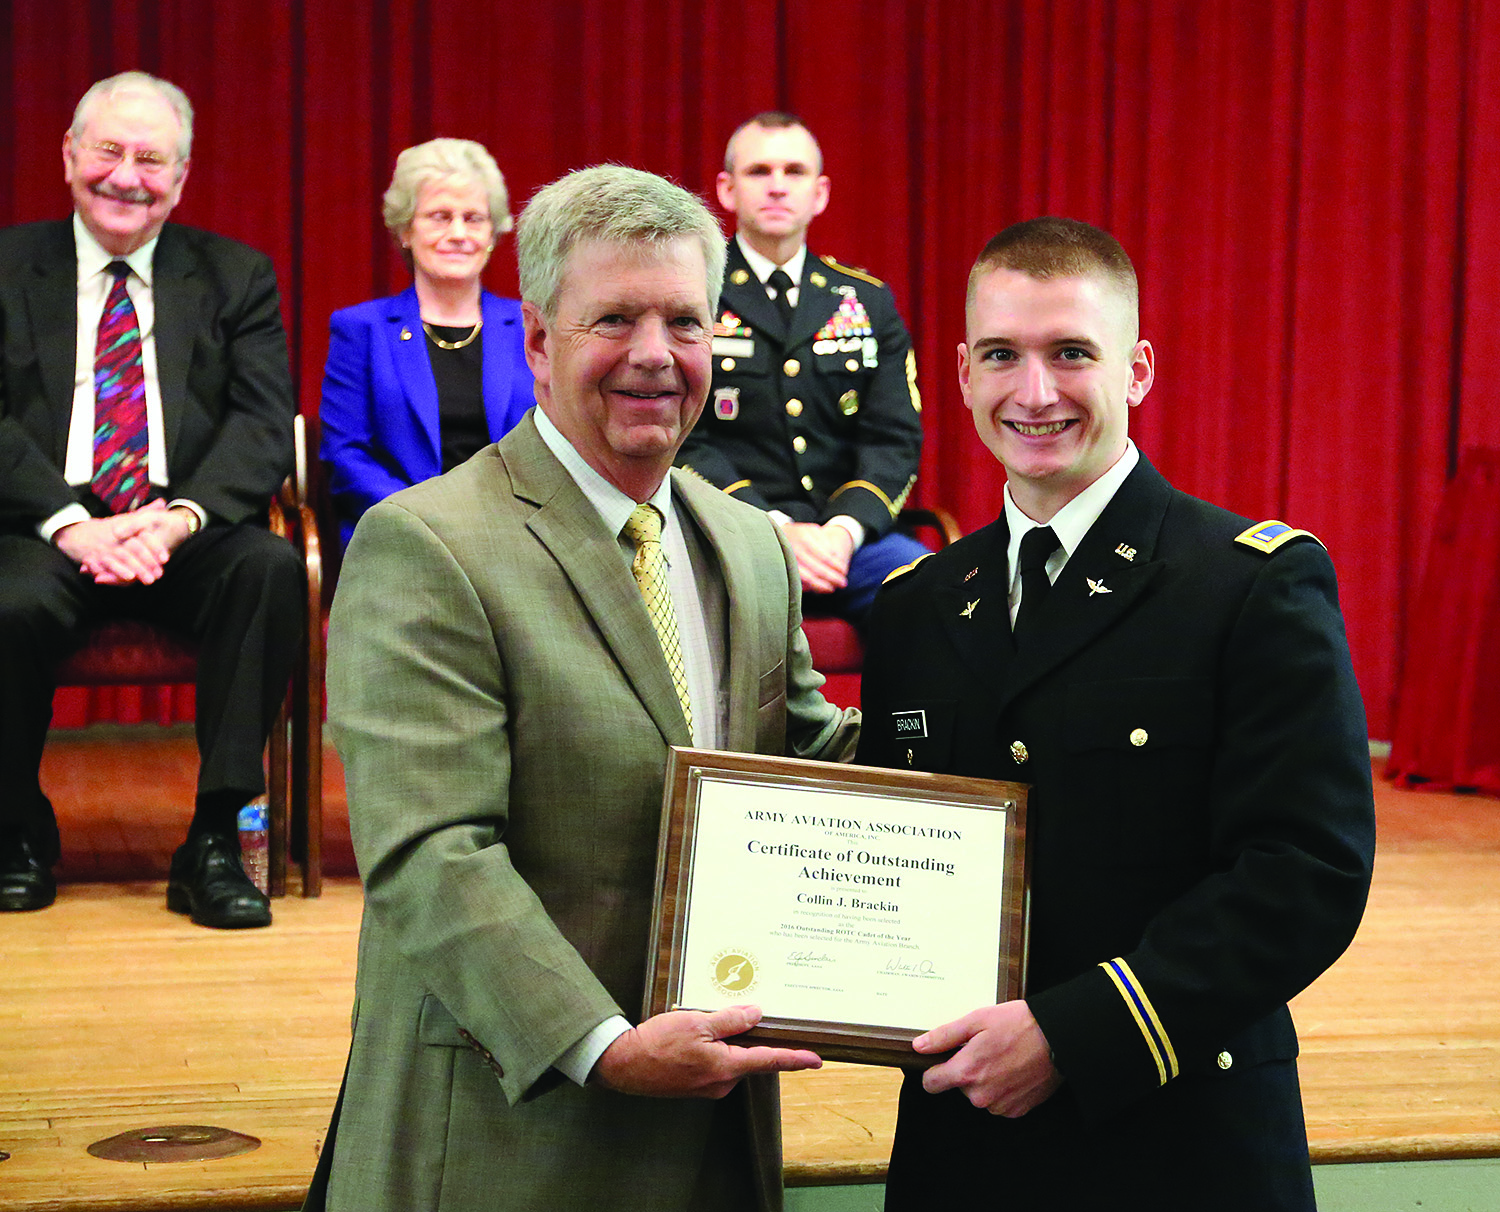 During commissioning in May, Collin Brackin '16 received a Certificate of Outstanding Achievement from the Army Aviation Association. Brackin was named US Army Cadet of the Year in 2015.